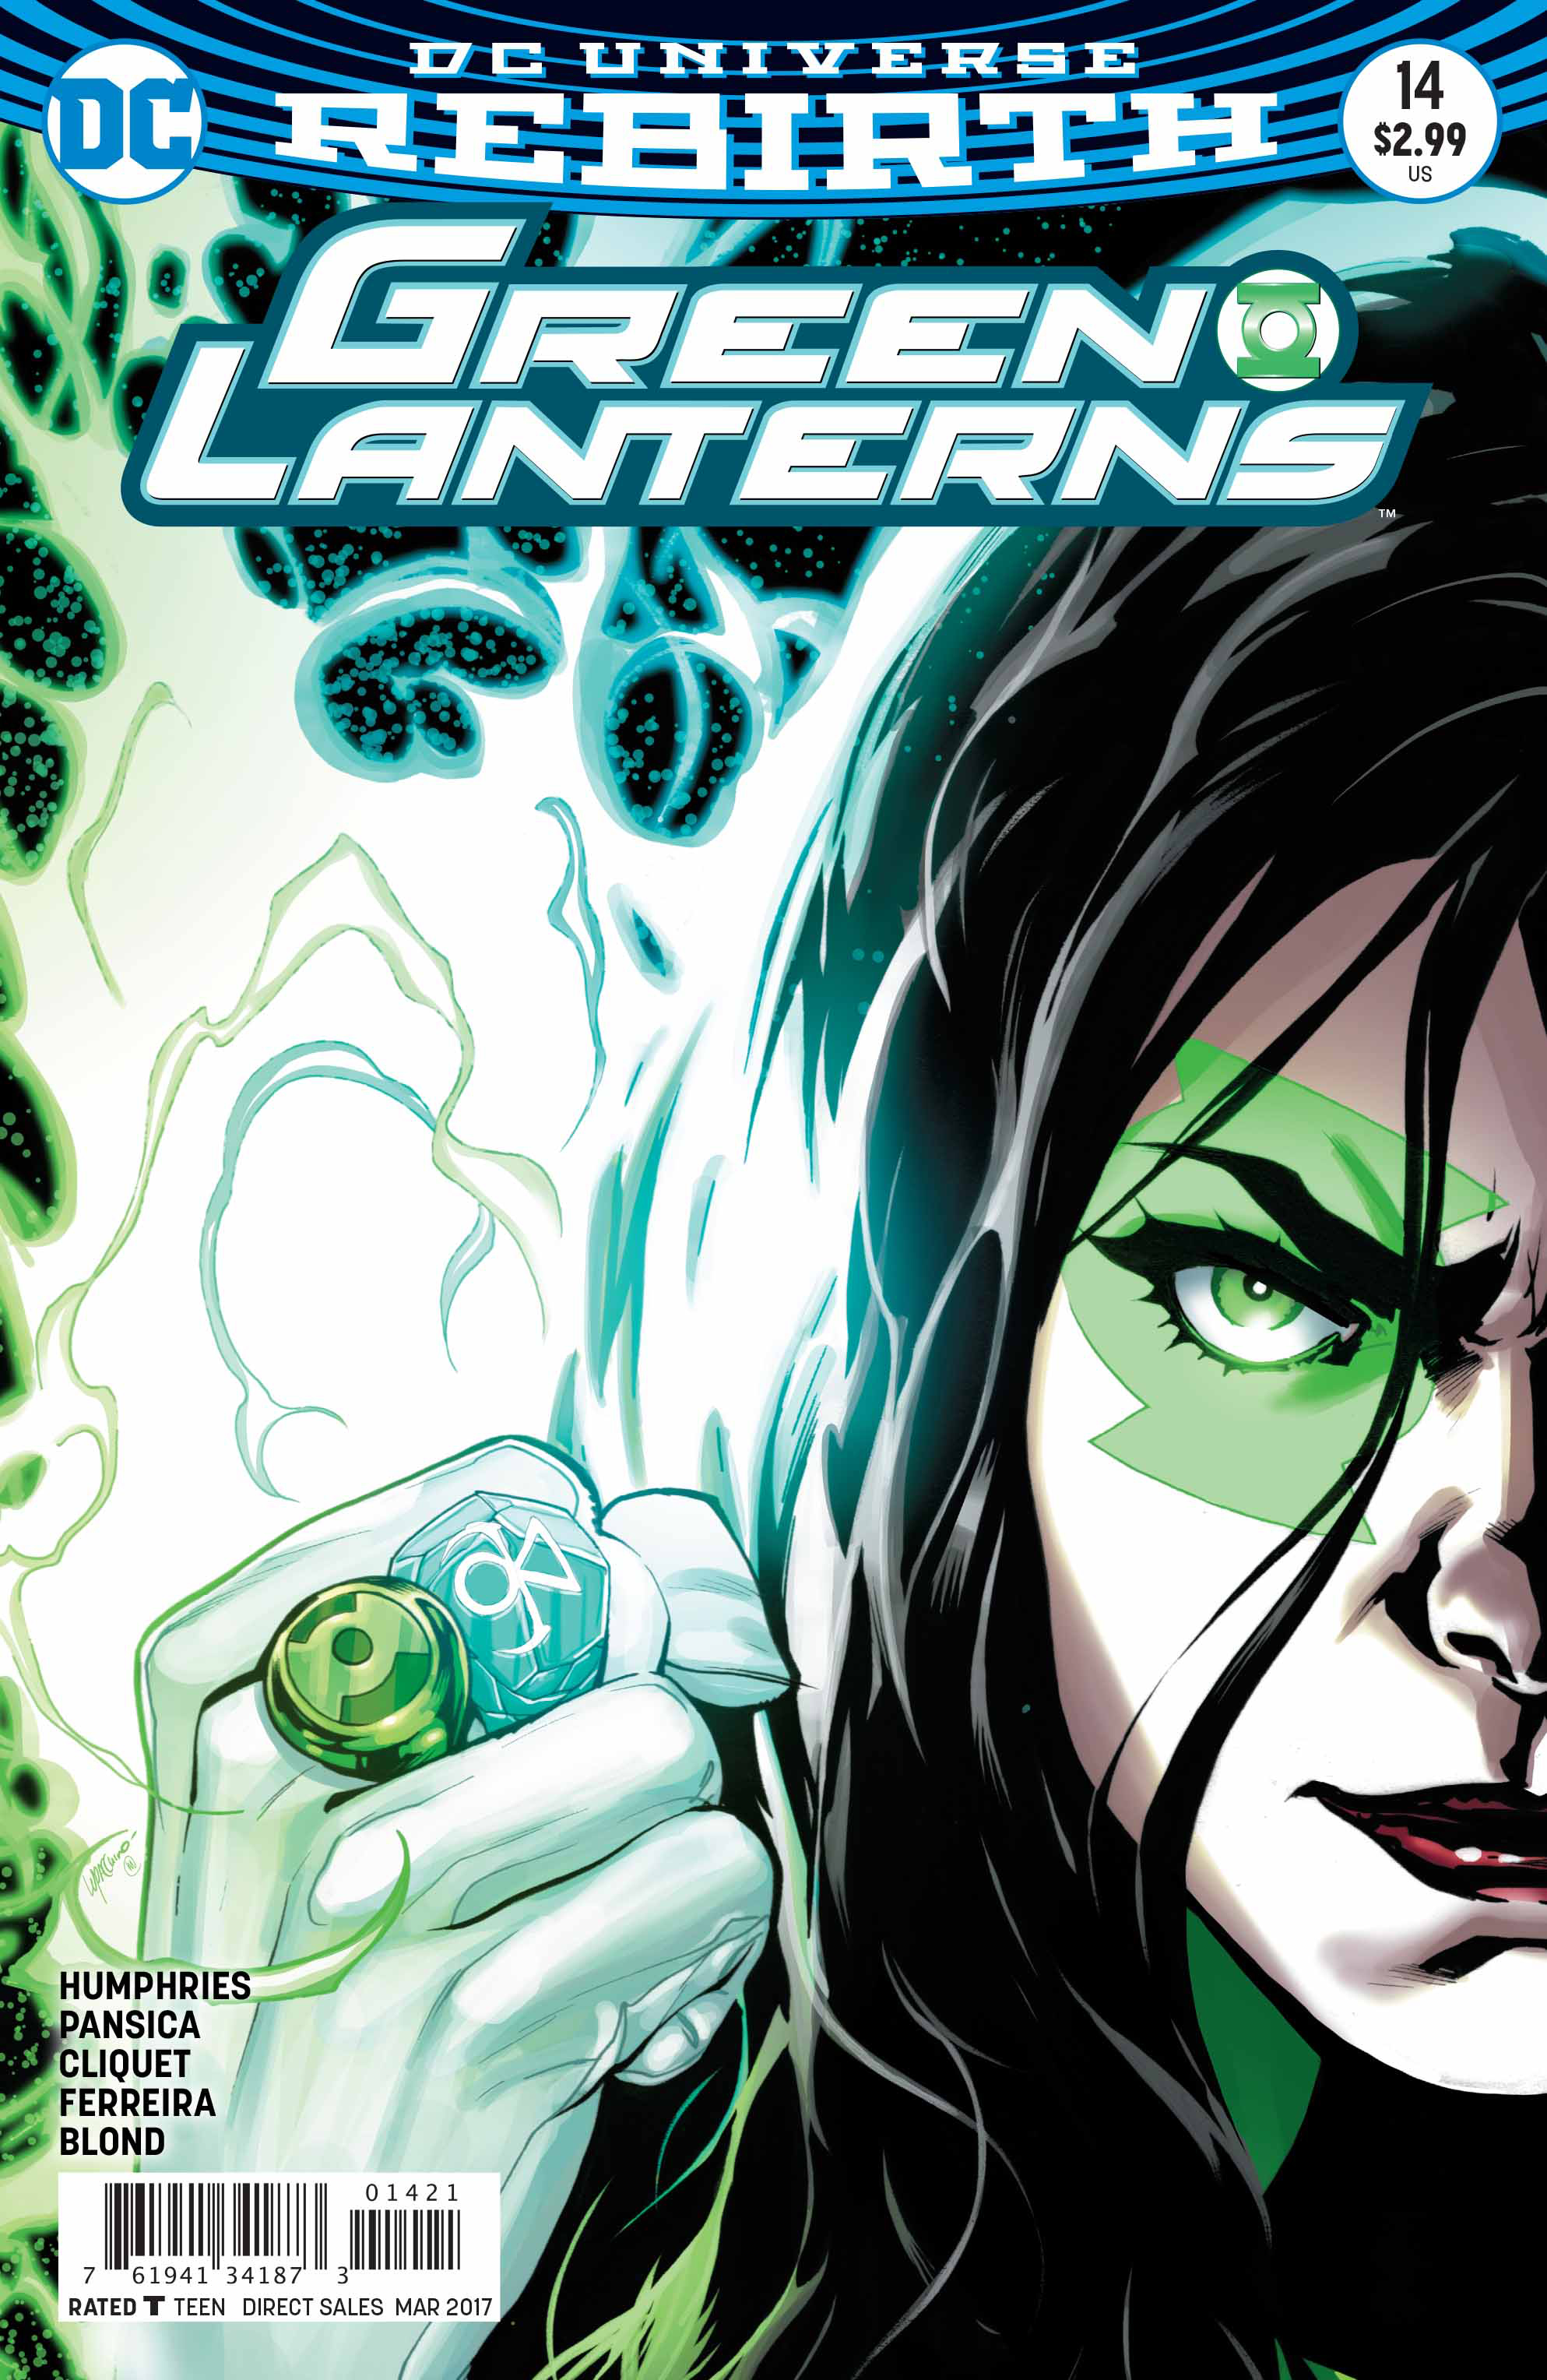 GREEN LANTERNS #14 VAR ED